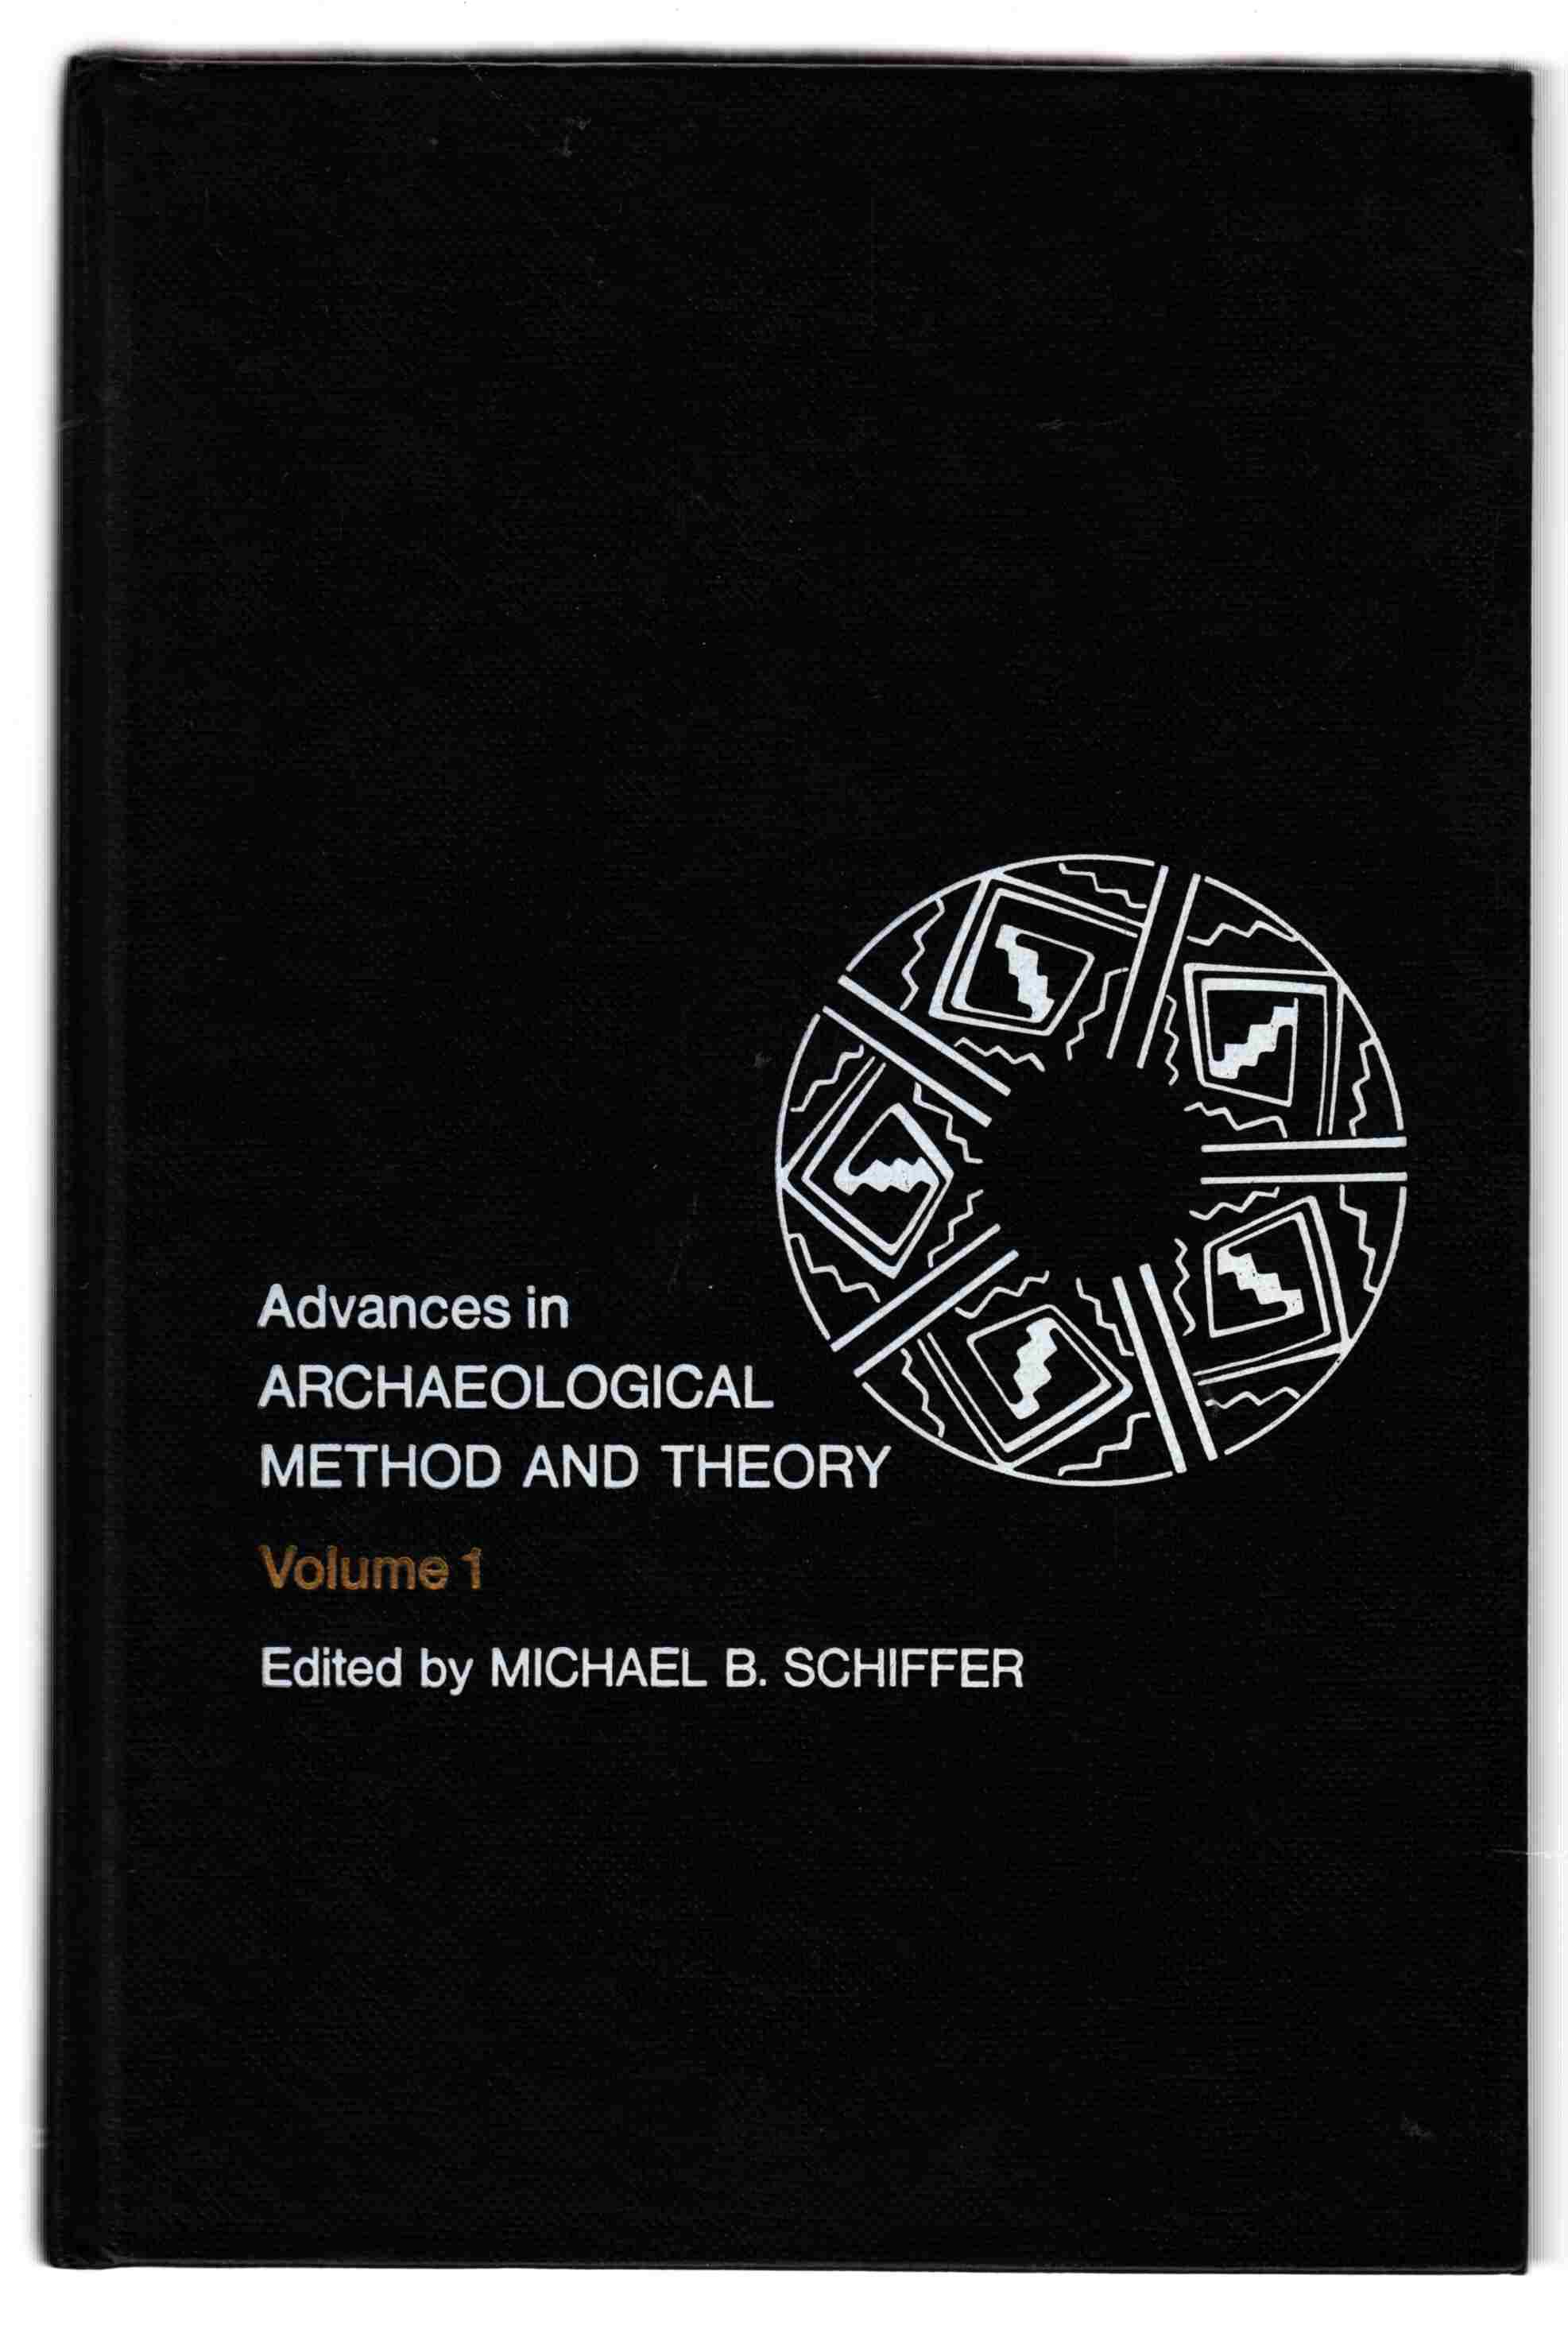 Image for Advances in Archaeological Method and Theory Volume 1